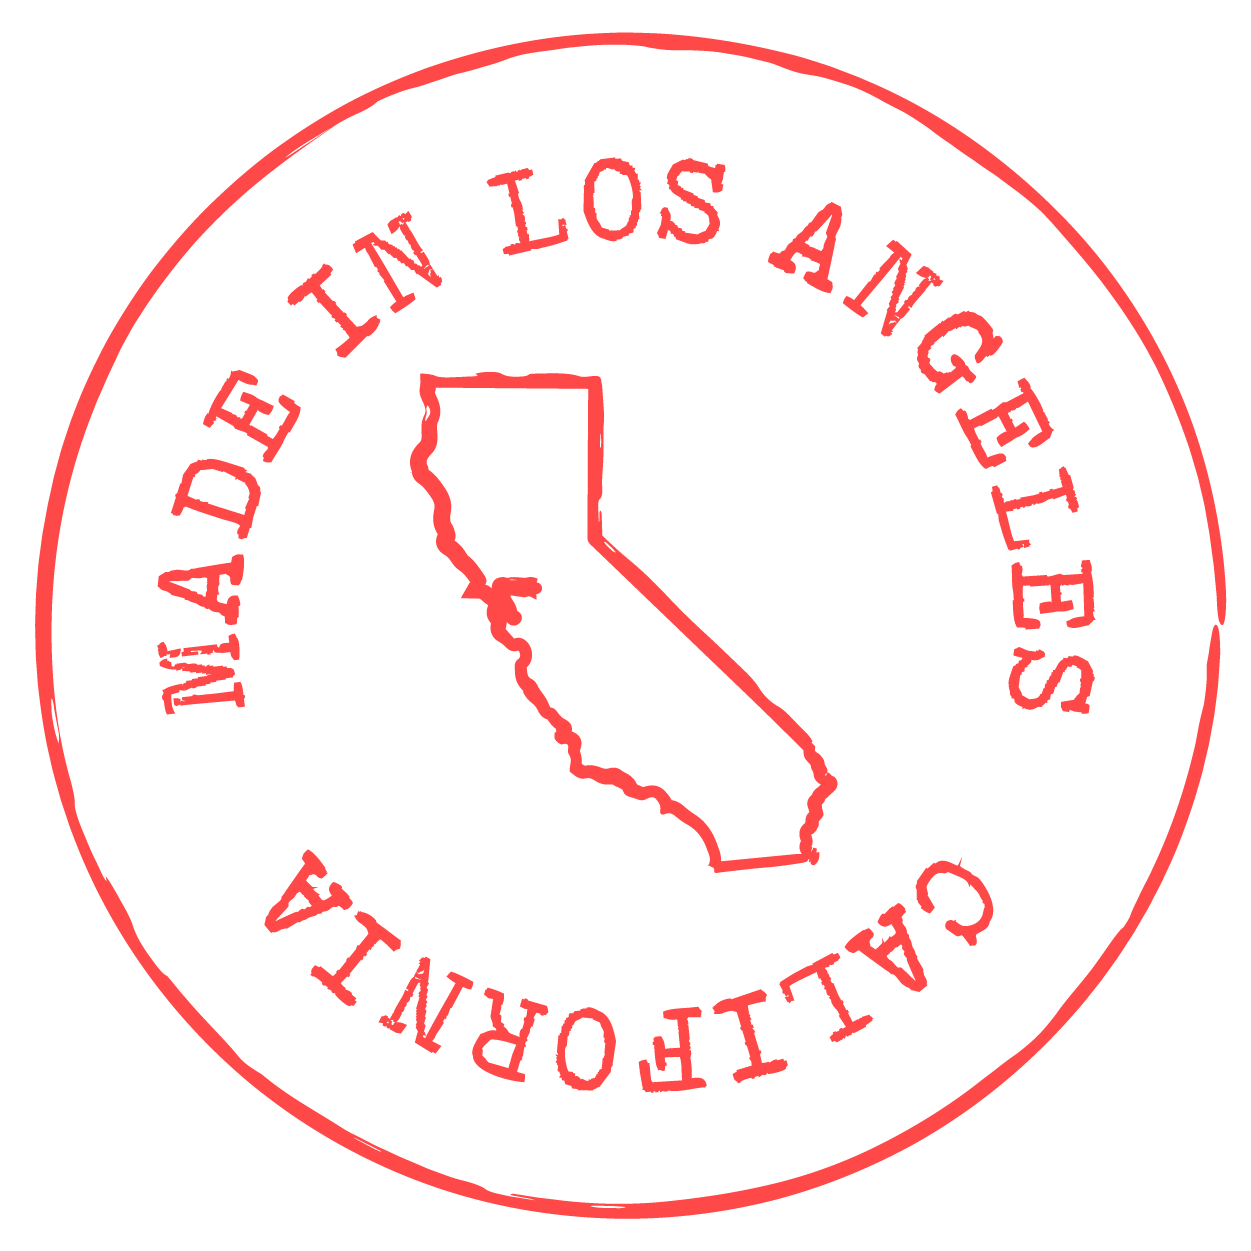 STATE_Seals_CALIFORNIA.png